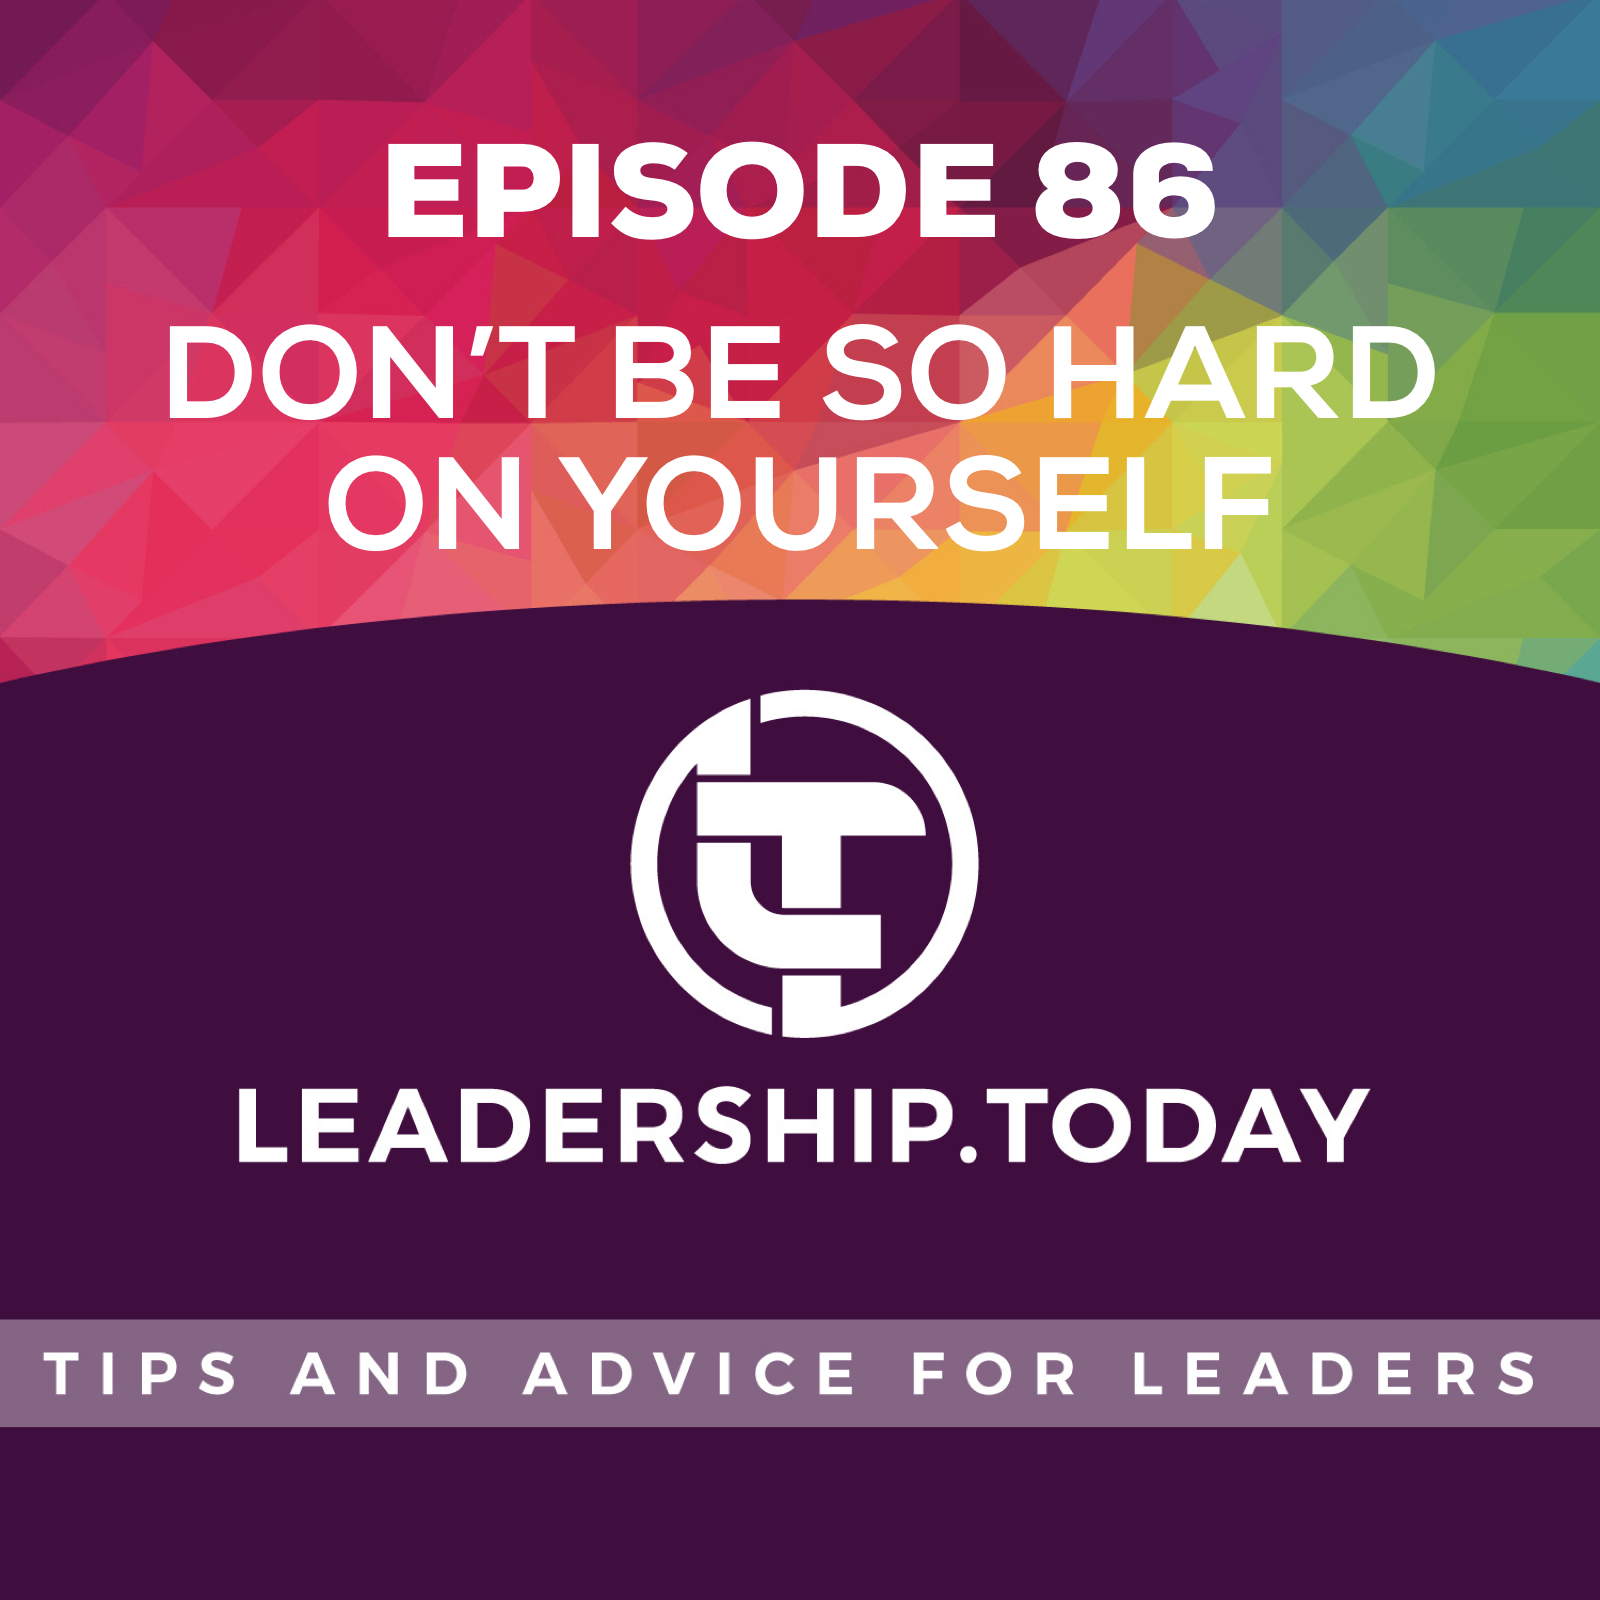 Episode 86 - Don't Be So Hard On Yourself